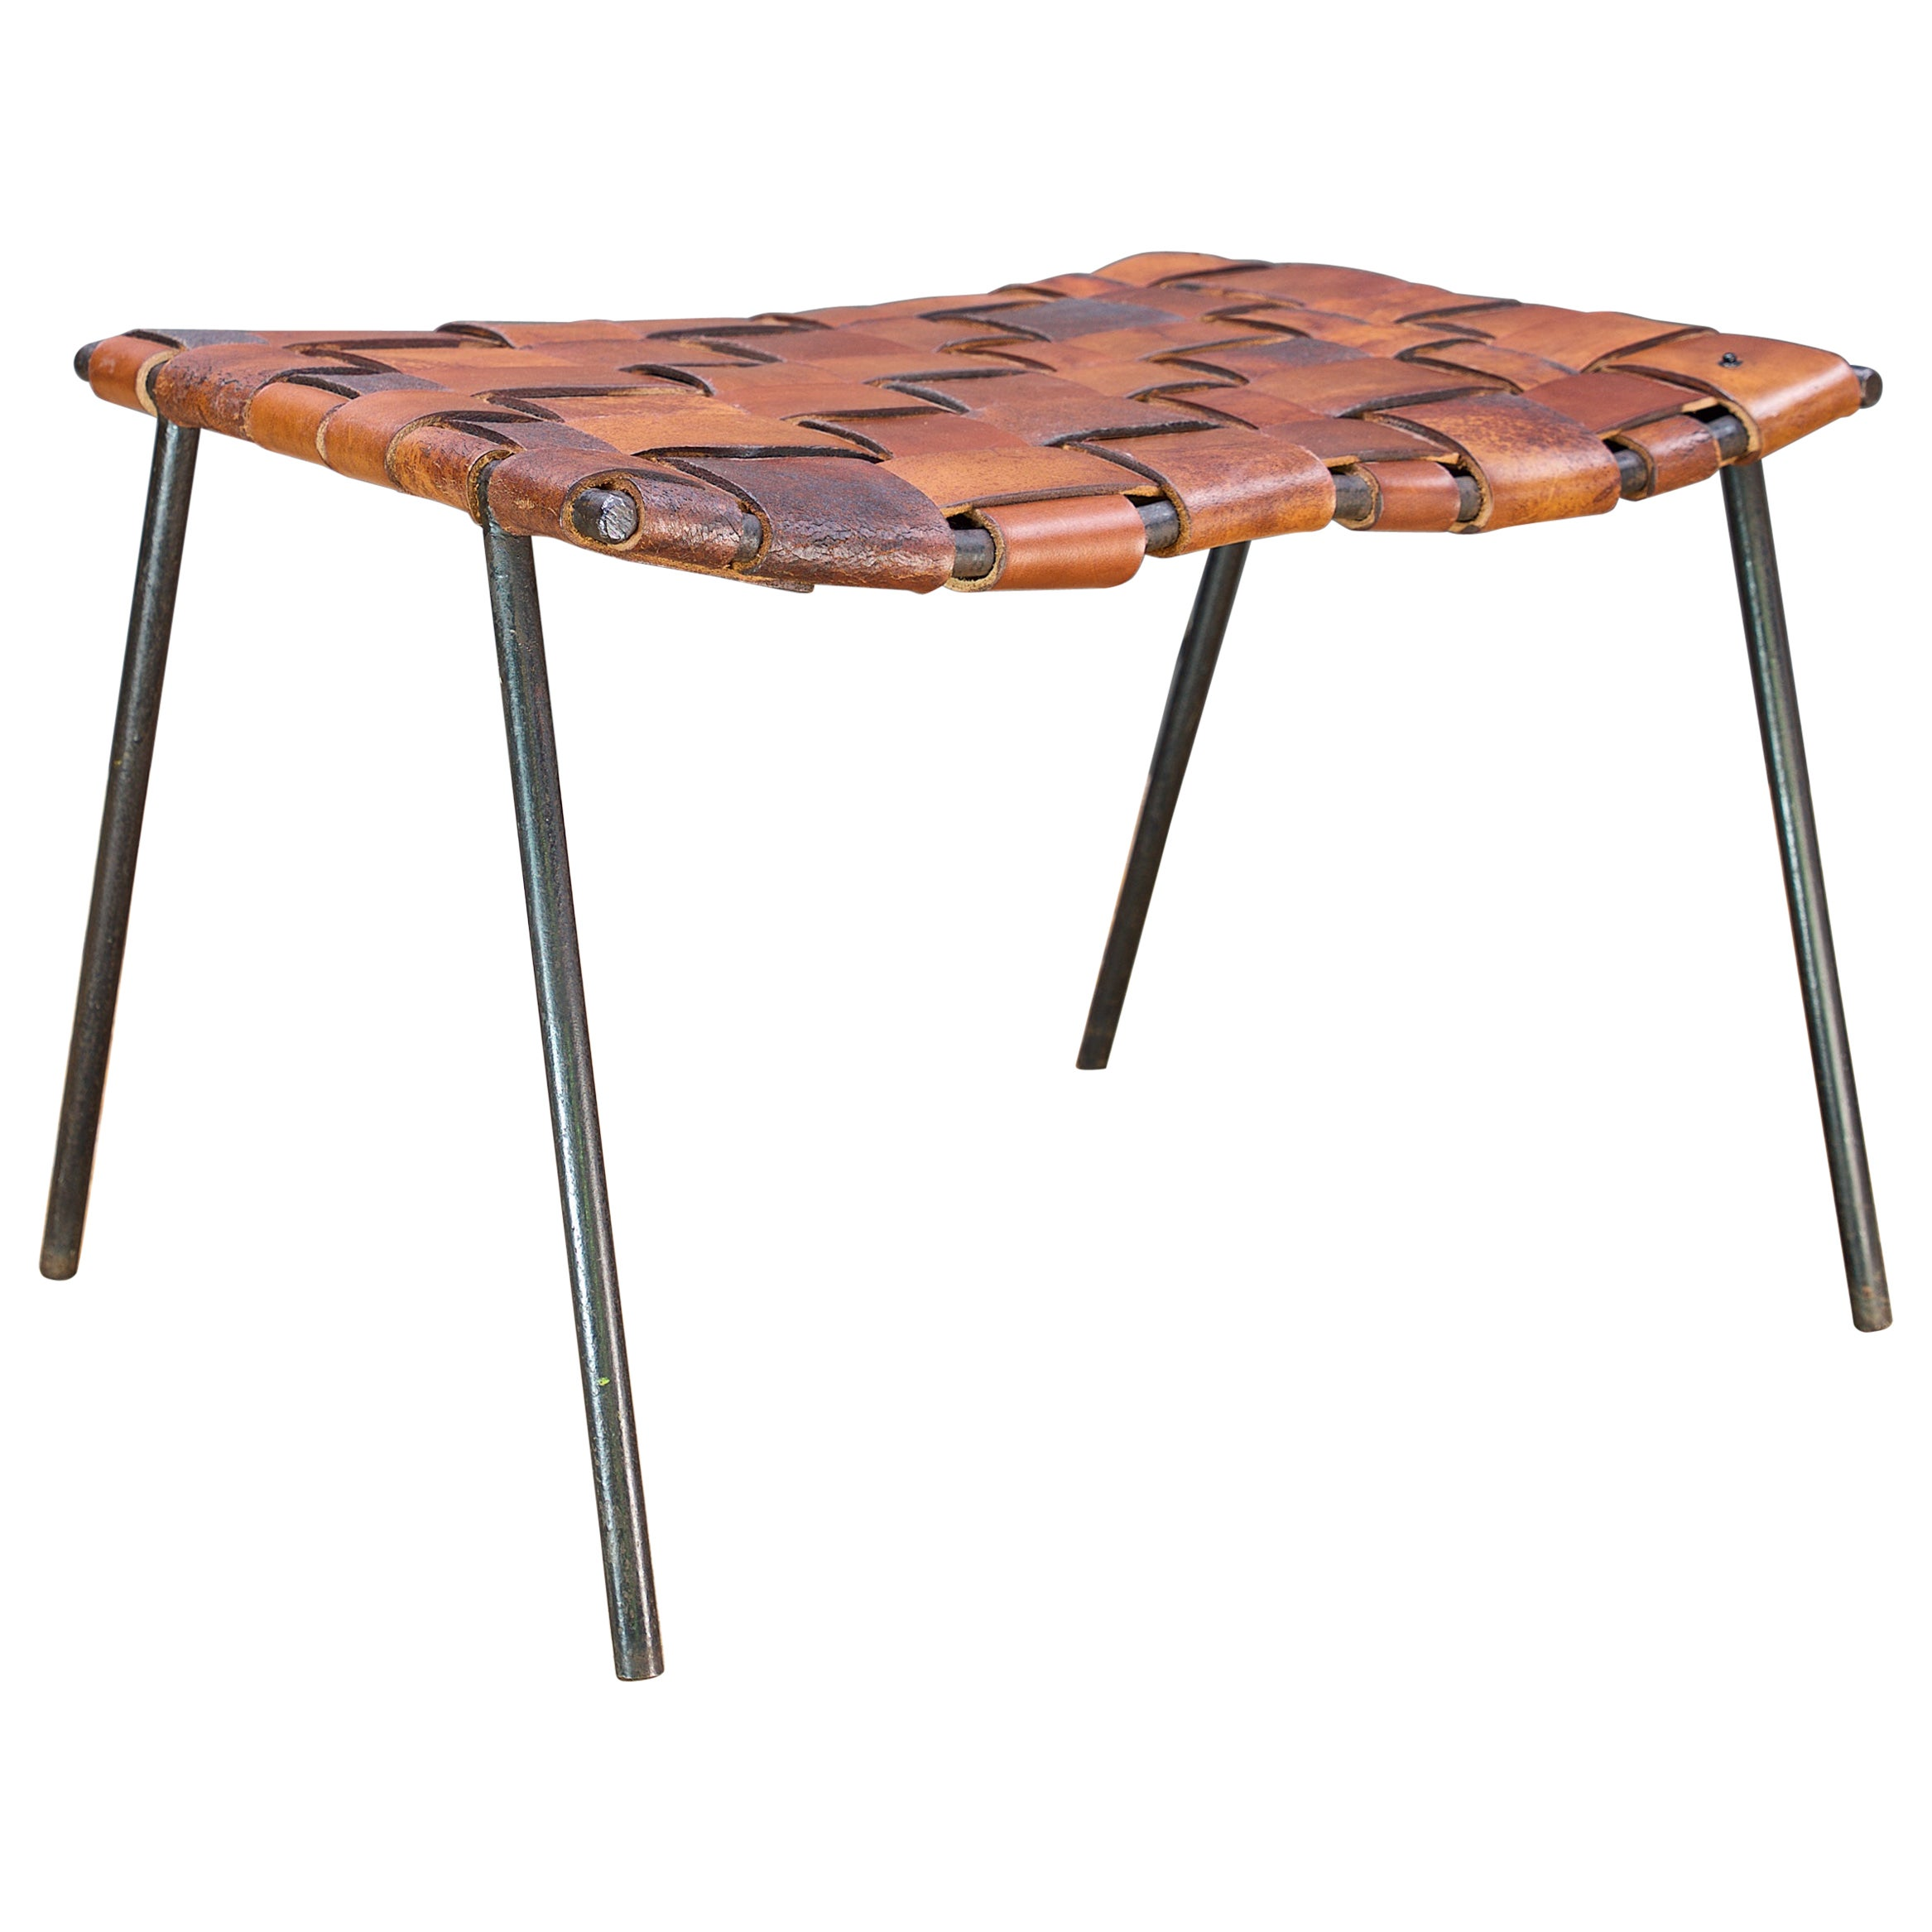 Architectural Studio Craft Iron Woven Leather Cabin Modern Ottoman Stool Bench